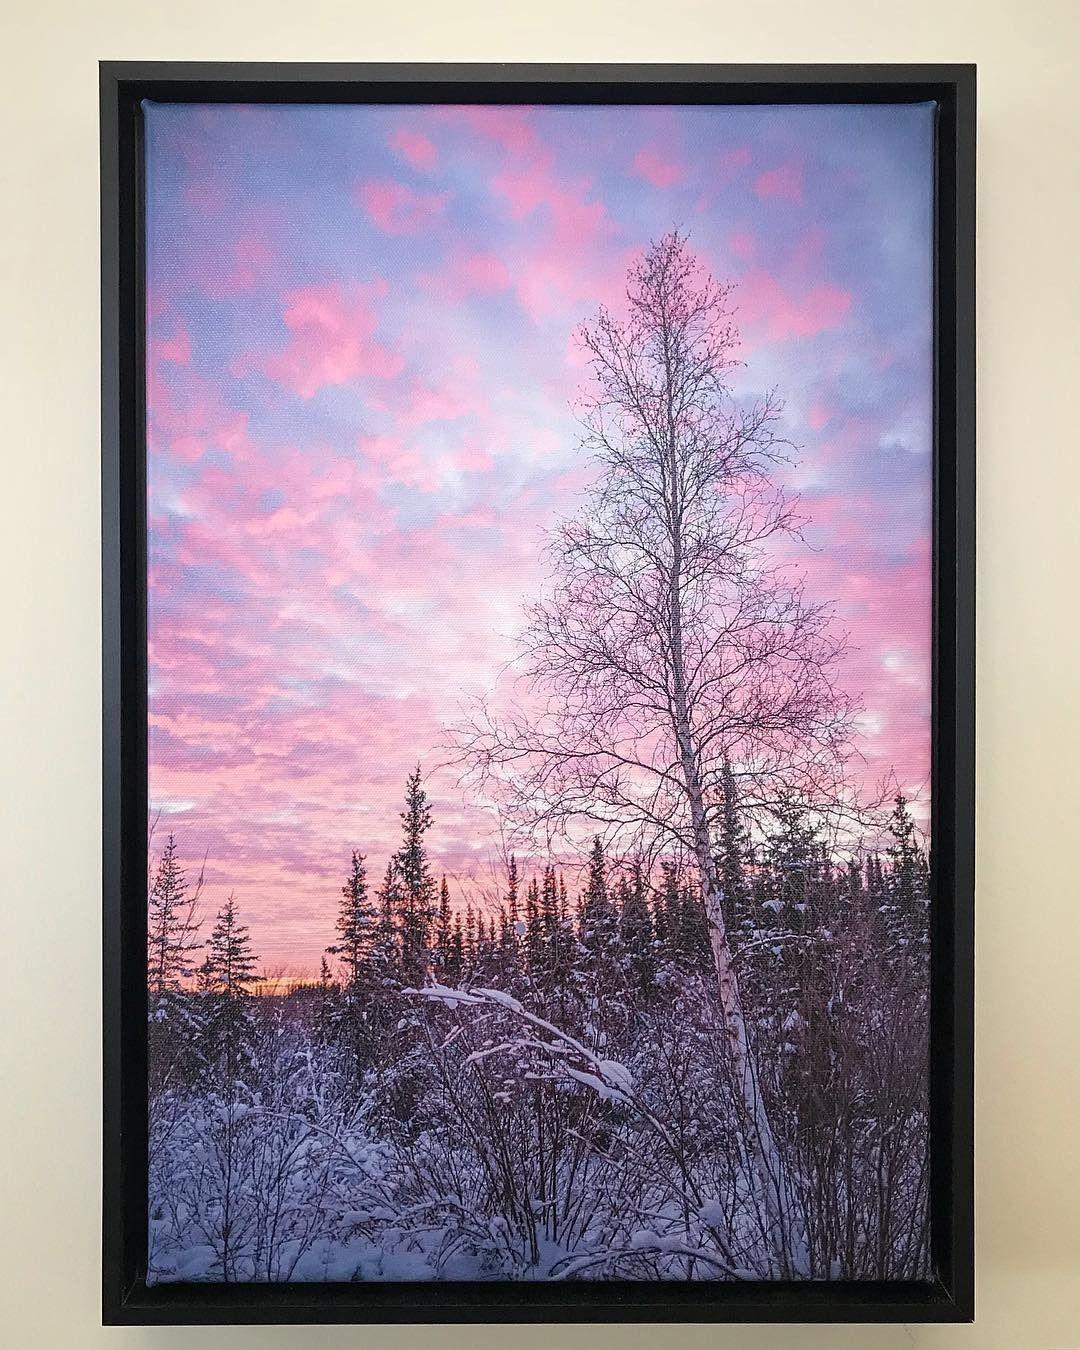 Northwest Territories Sunrise Printed on Canvas by Posterjack